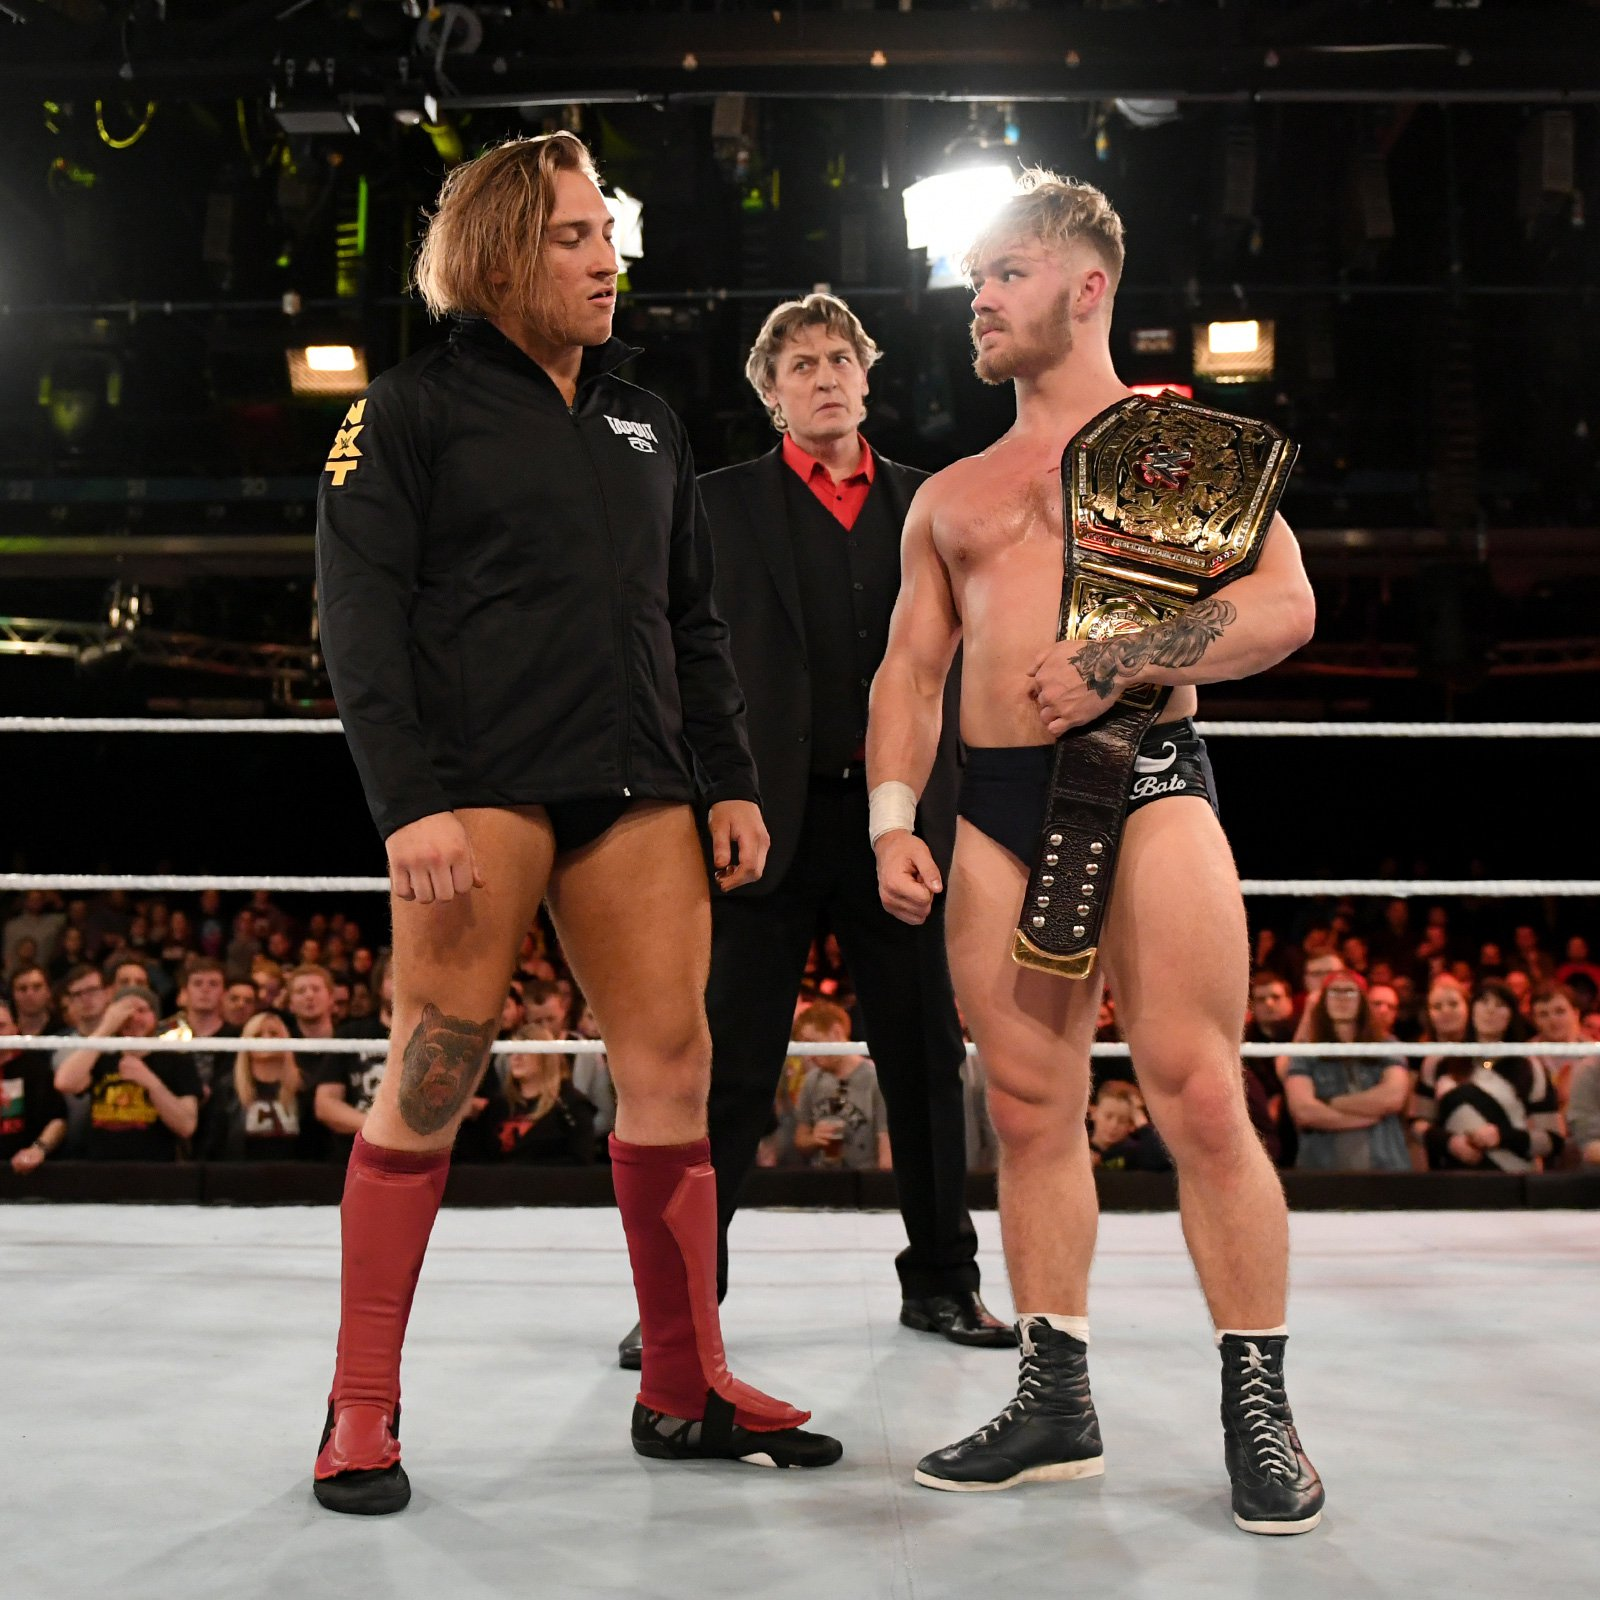 With NXT General Manager William Regal keeping a close eye on the rebellious Dunne, the foundation is now set for TakeOver: Chicago's huge WWE United Kingdom Championship Match.